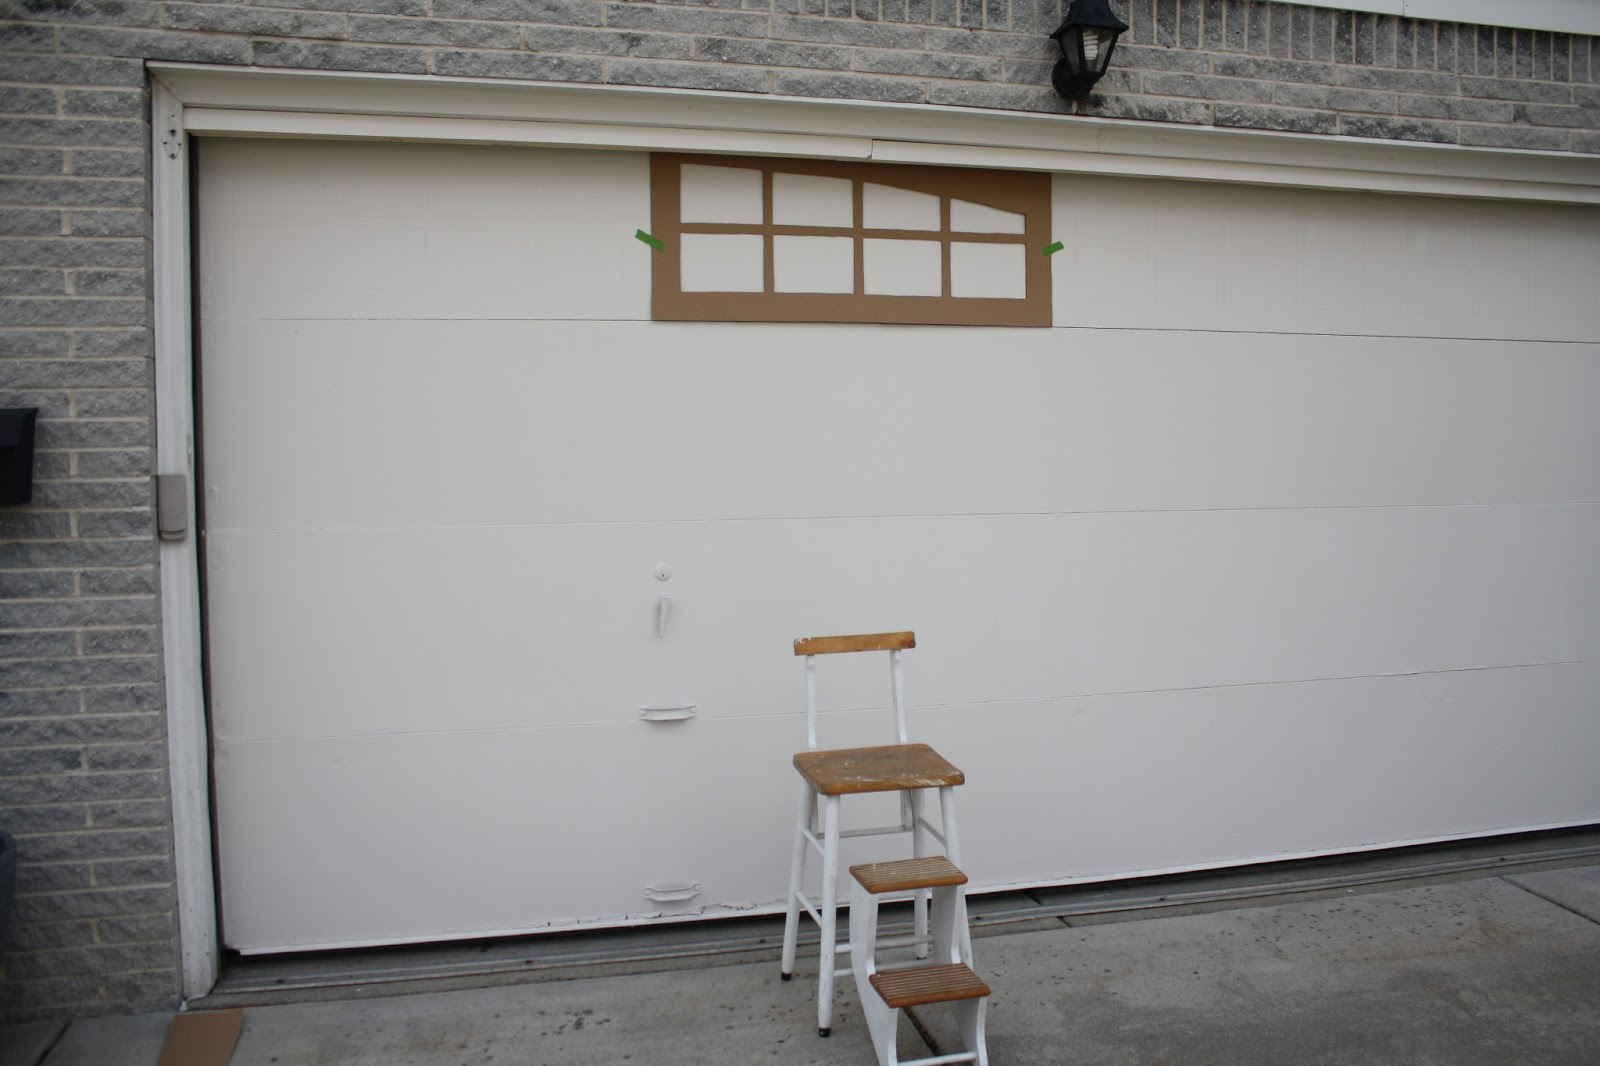 Ballin With Balling Garage Door Facelift For Less Than 20